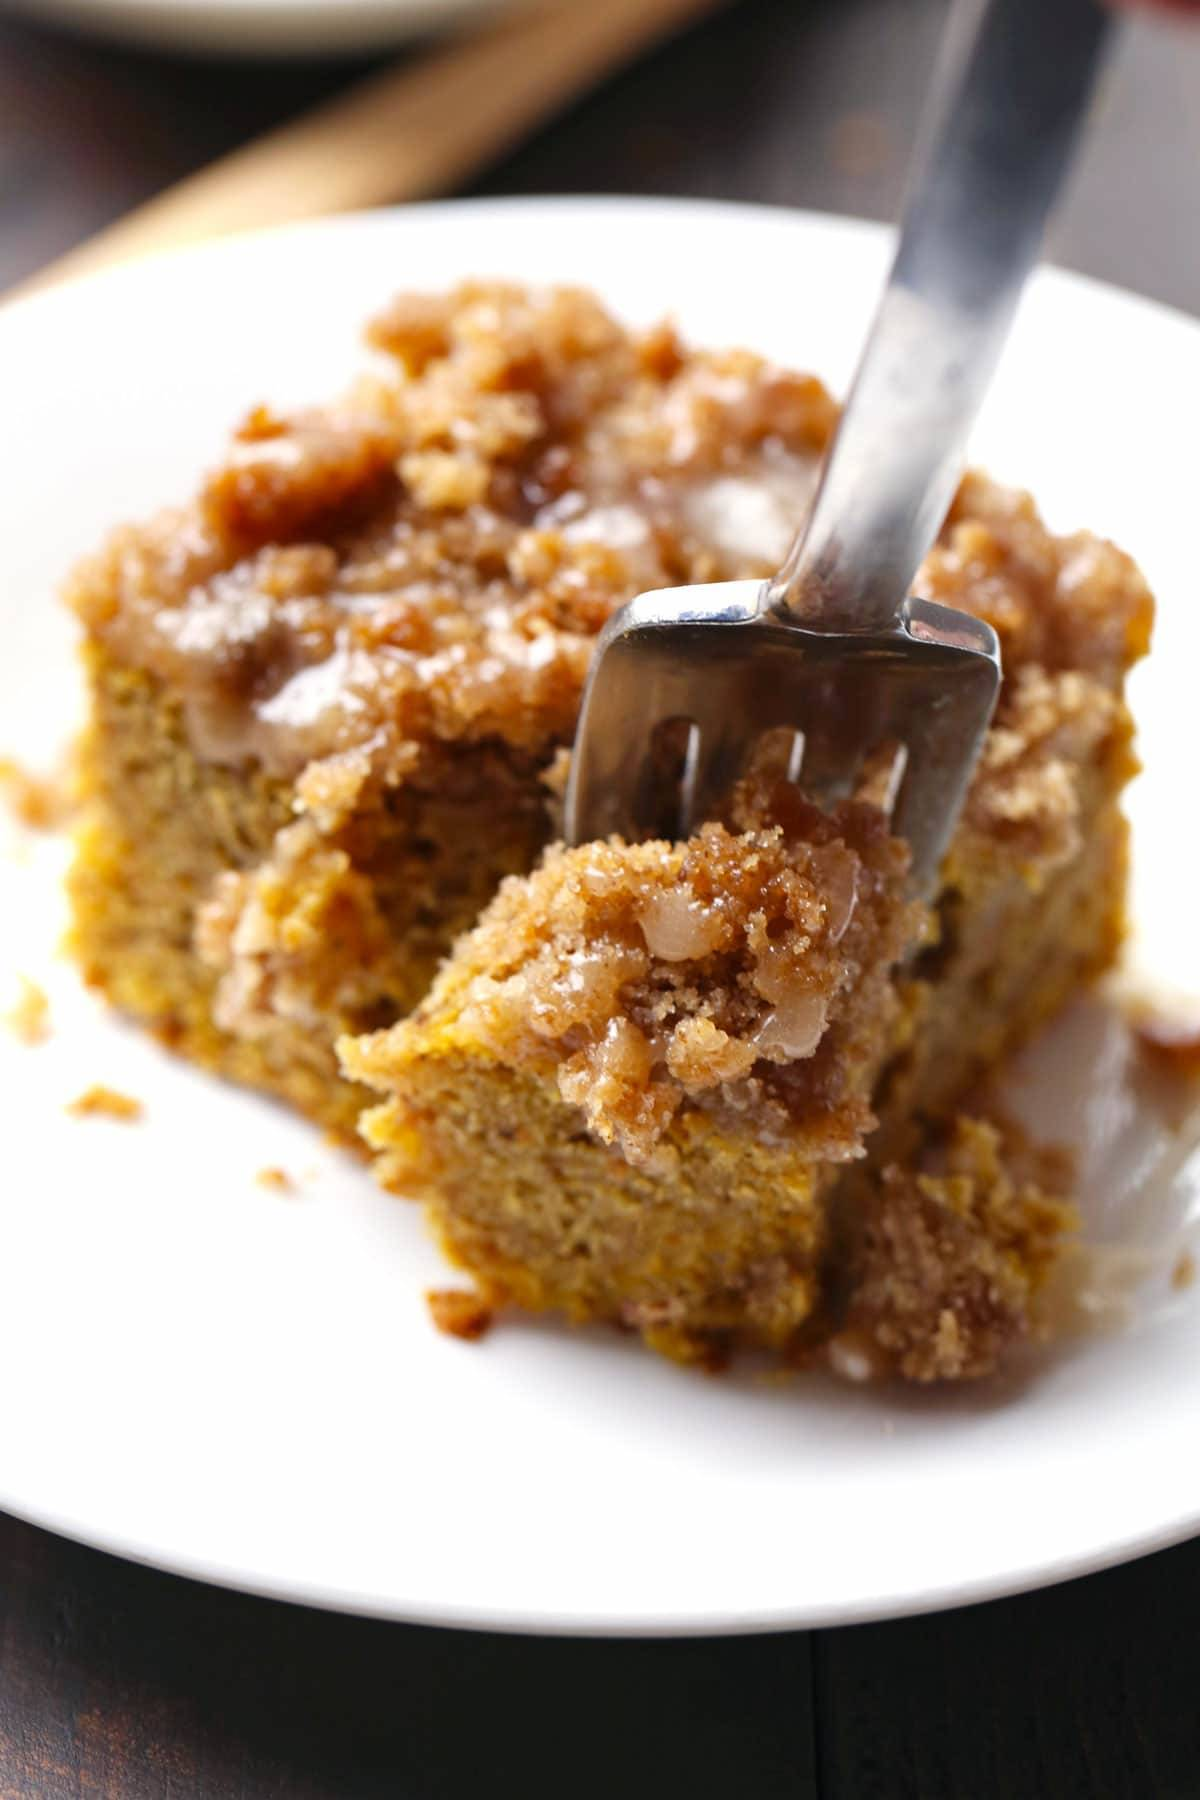 Cinnamon Streusel Pumpkin Coffee Cake with Maple Glaze on a white plate with a fork.